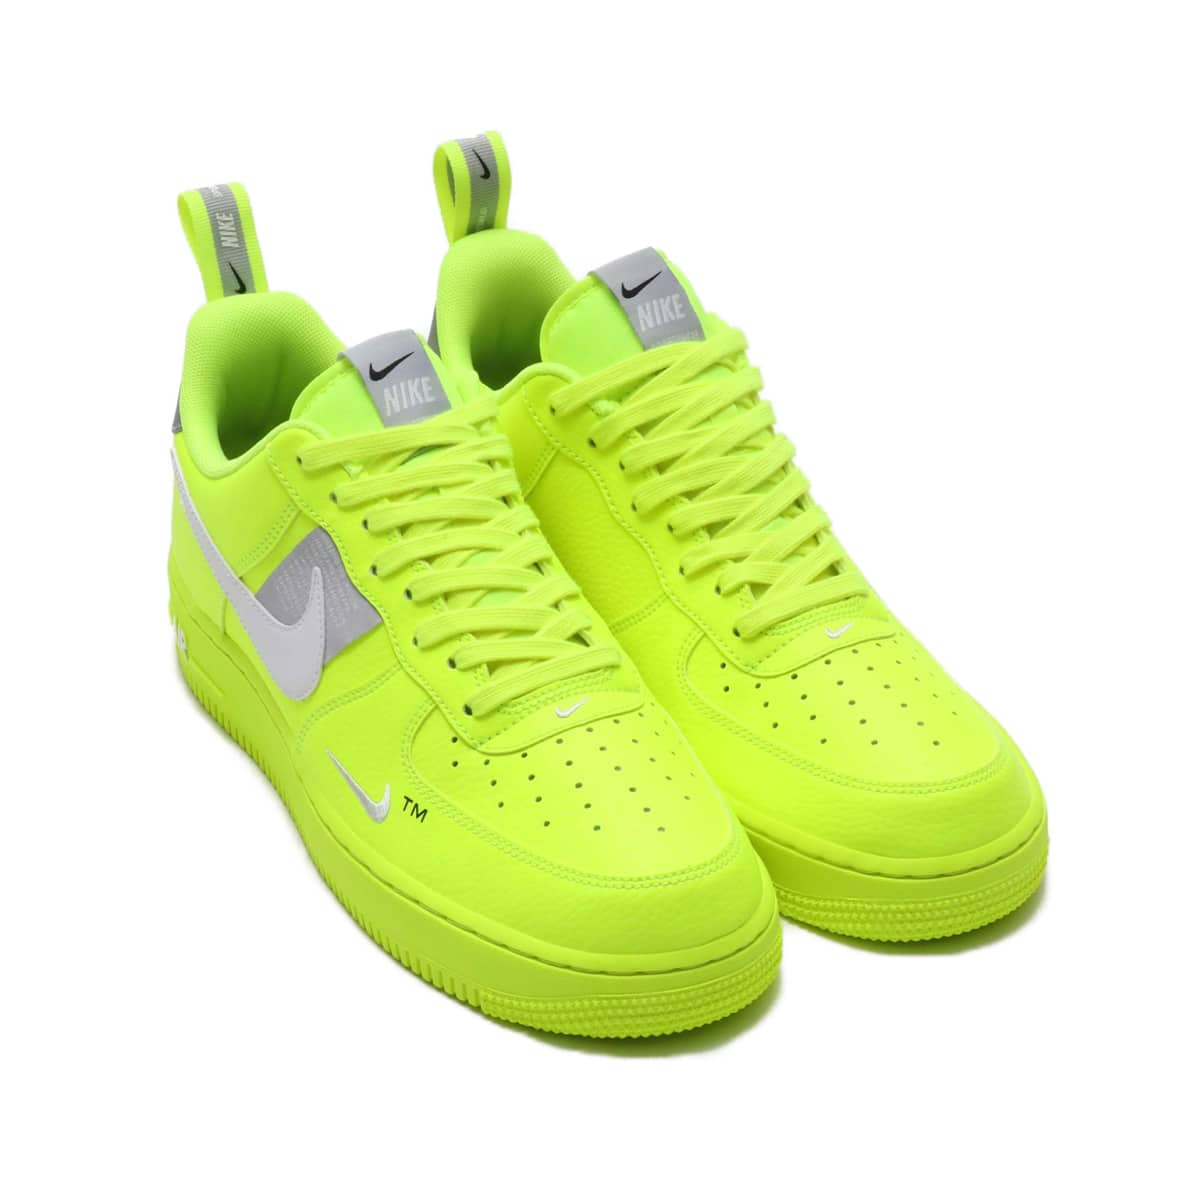 NIKE AIR FORCE 1 '07 LV8 UTILITY  VOLT/WHITE-BLACK-WOLF GREY 18HO-I_photo_large